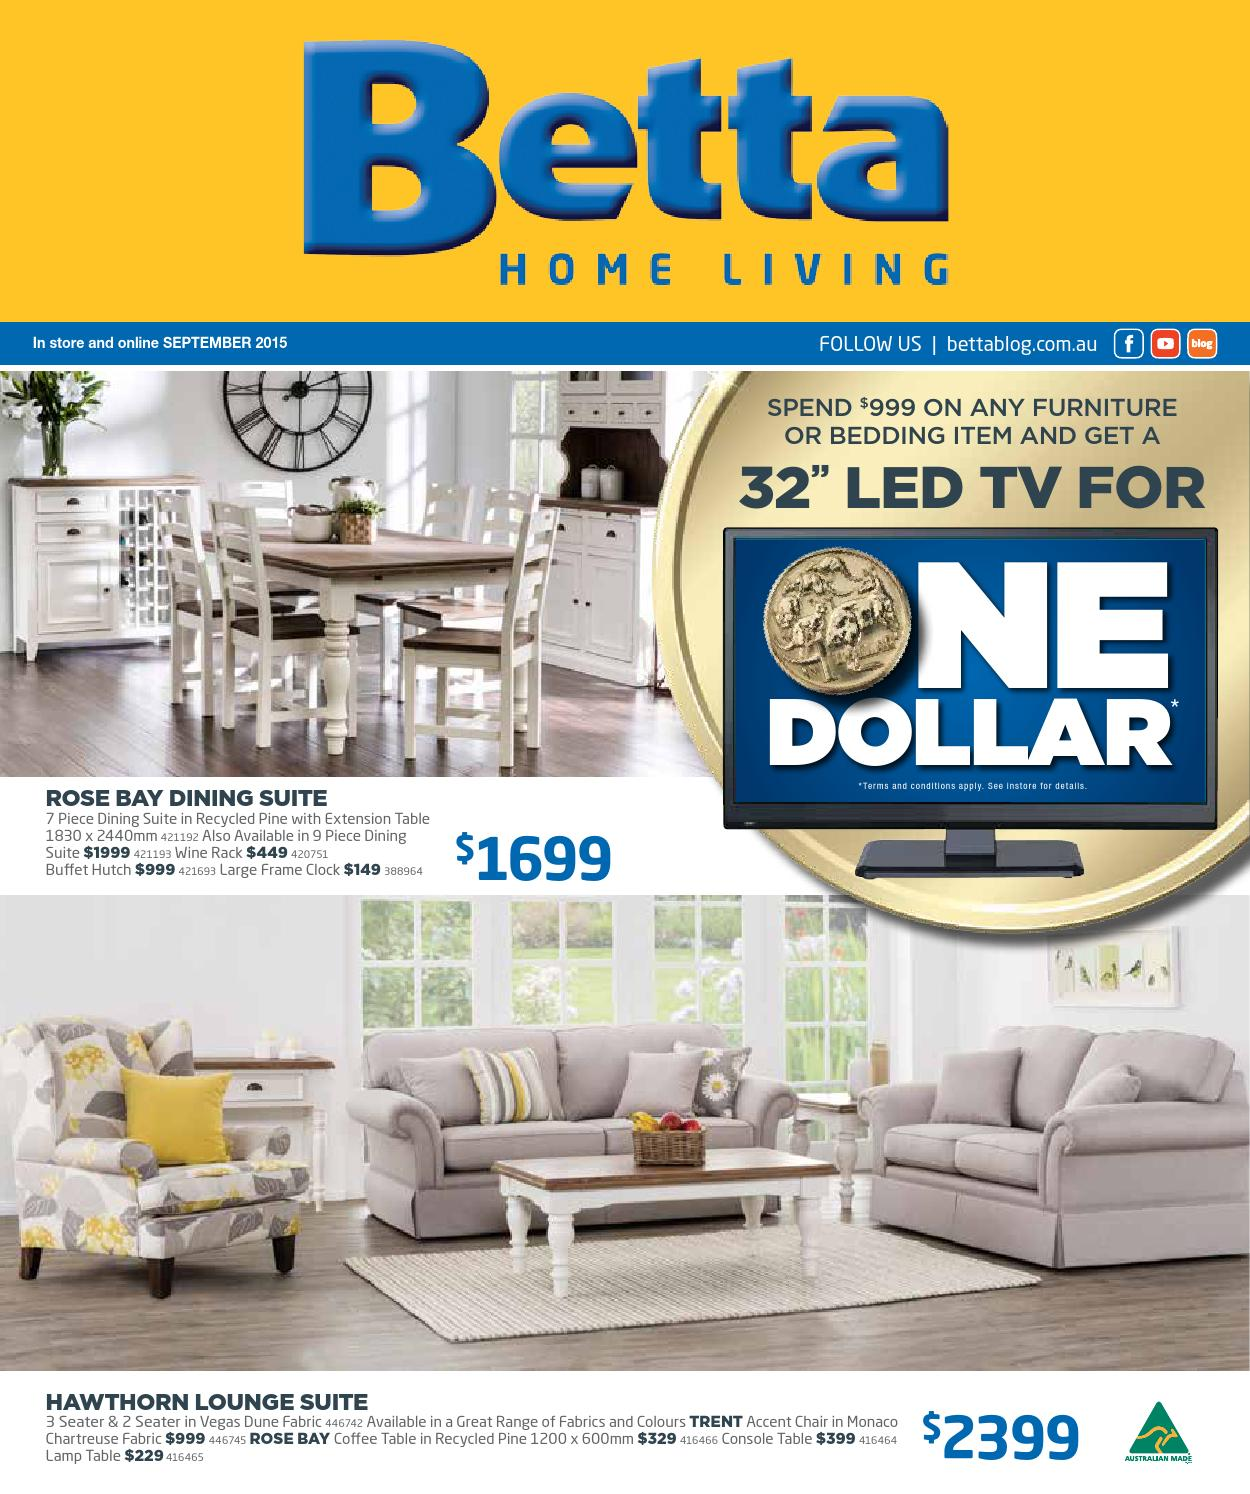 Betta Home Living Furniture Catalogue Sep 2015 By Echo Publications Issuu